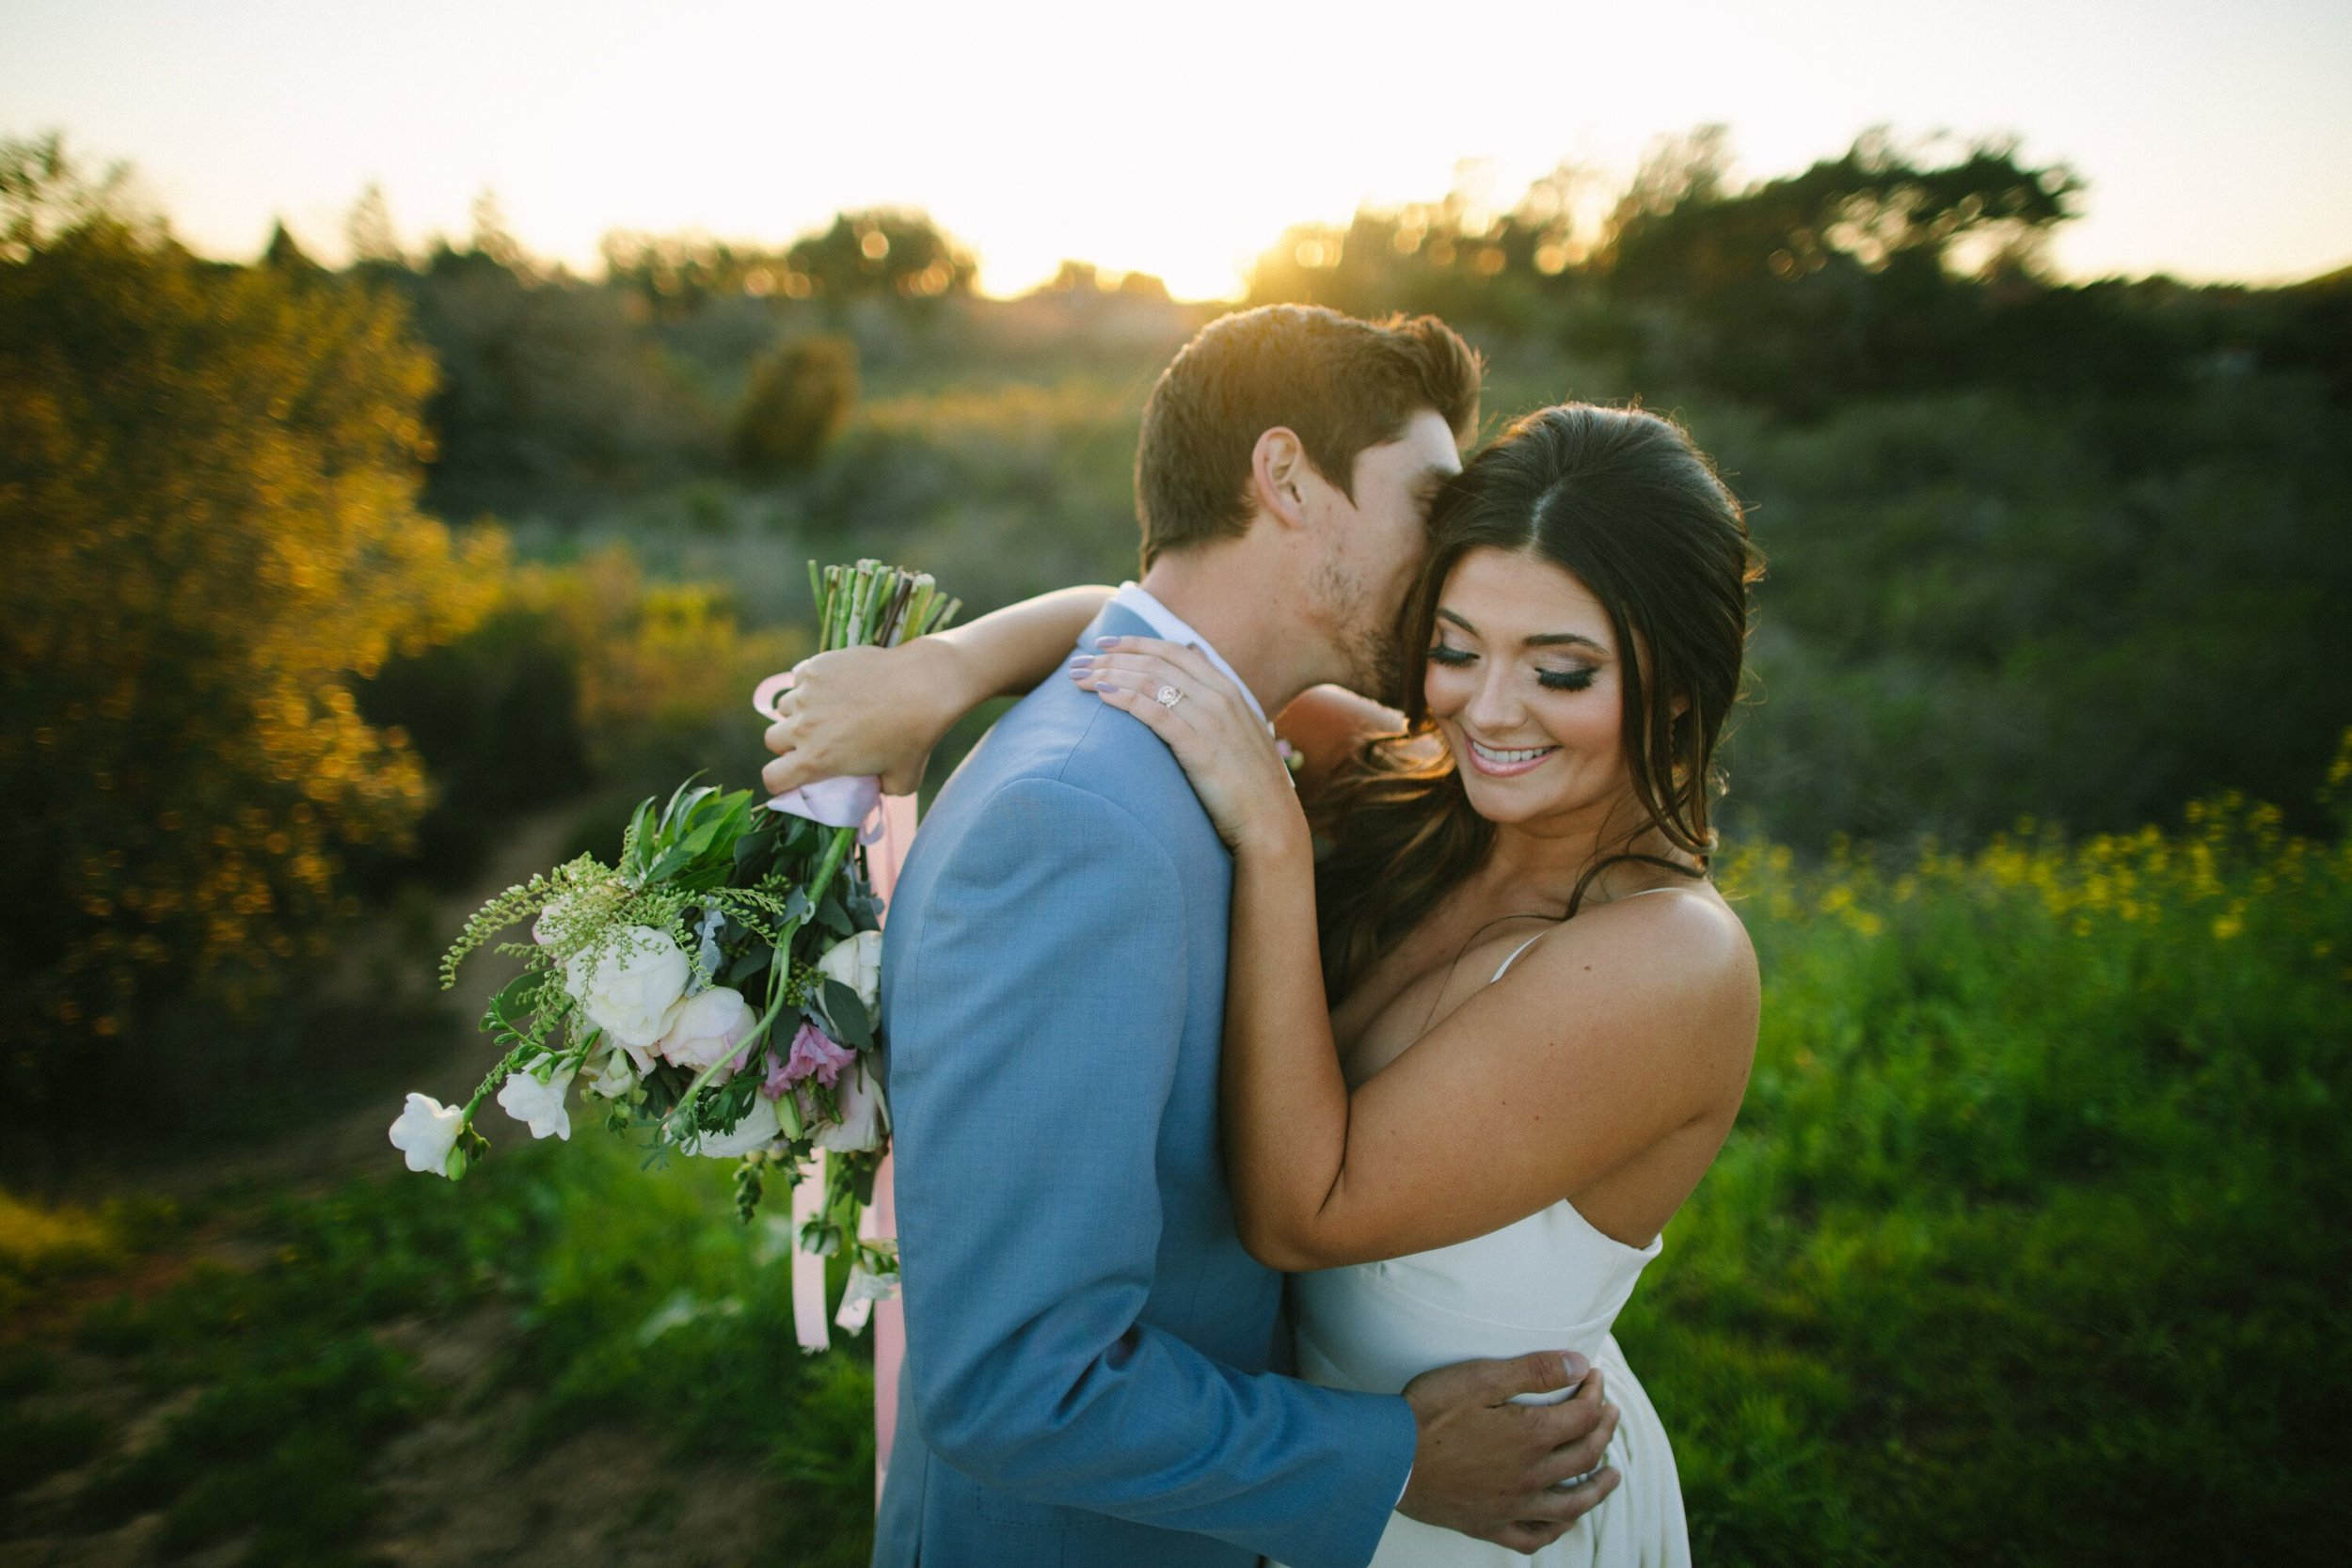 www.santabarbarawedding.com | Photographer: Patrick Ang | Venue: Rancho La Patera & Stow House | Wedding Planner: Elyse Rowen of Elyse Events | Bride and Groom Bouquet and Kiss